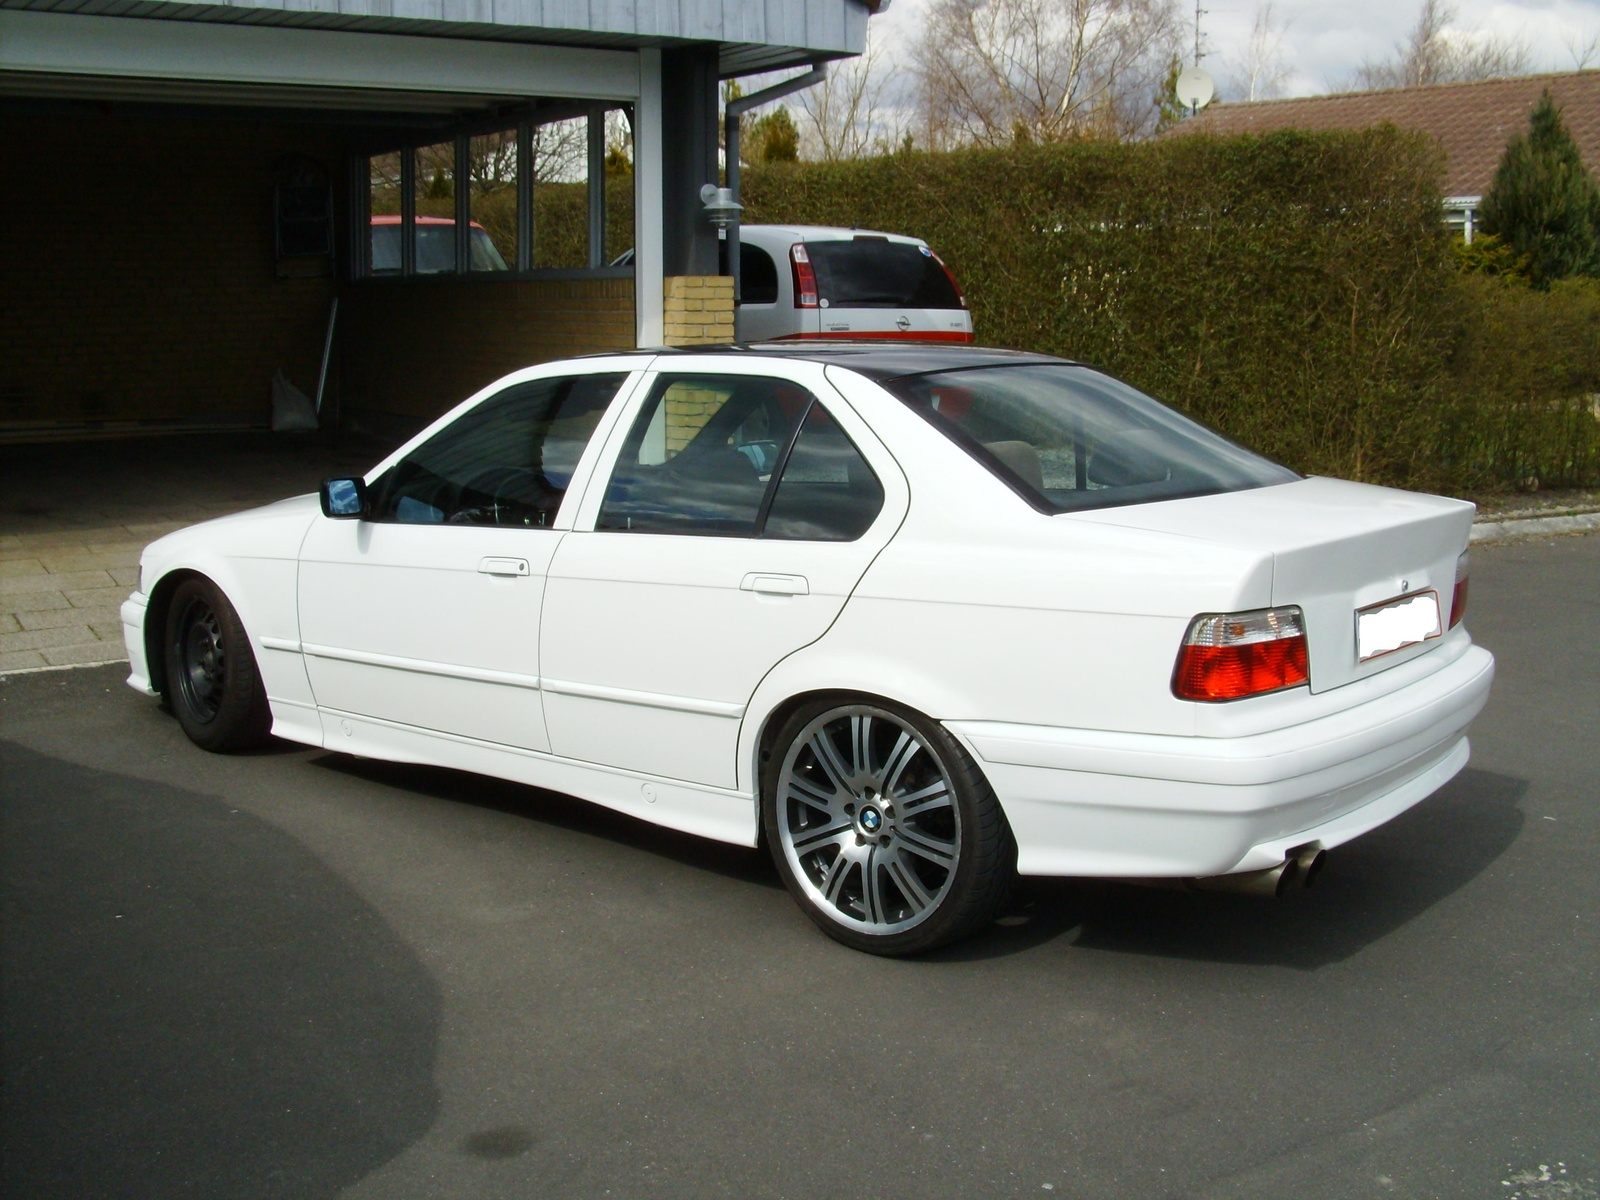 BMW 3 series 318is 1992 photo - 10